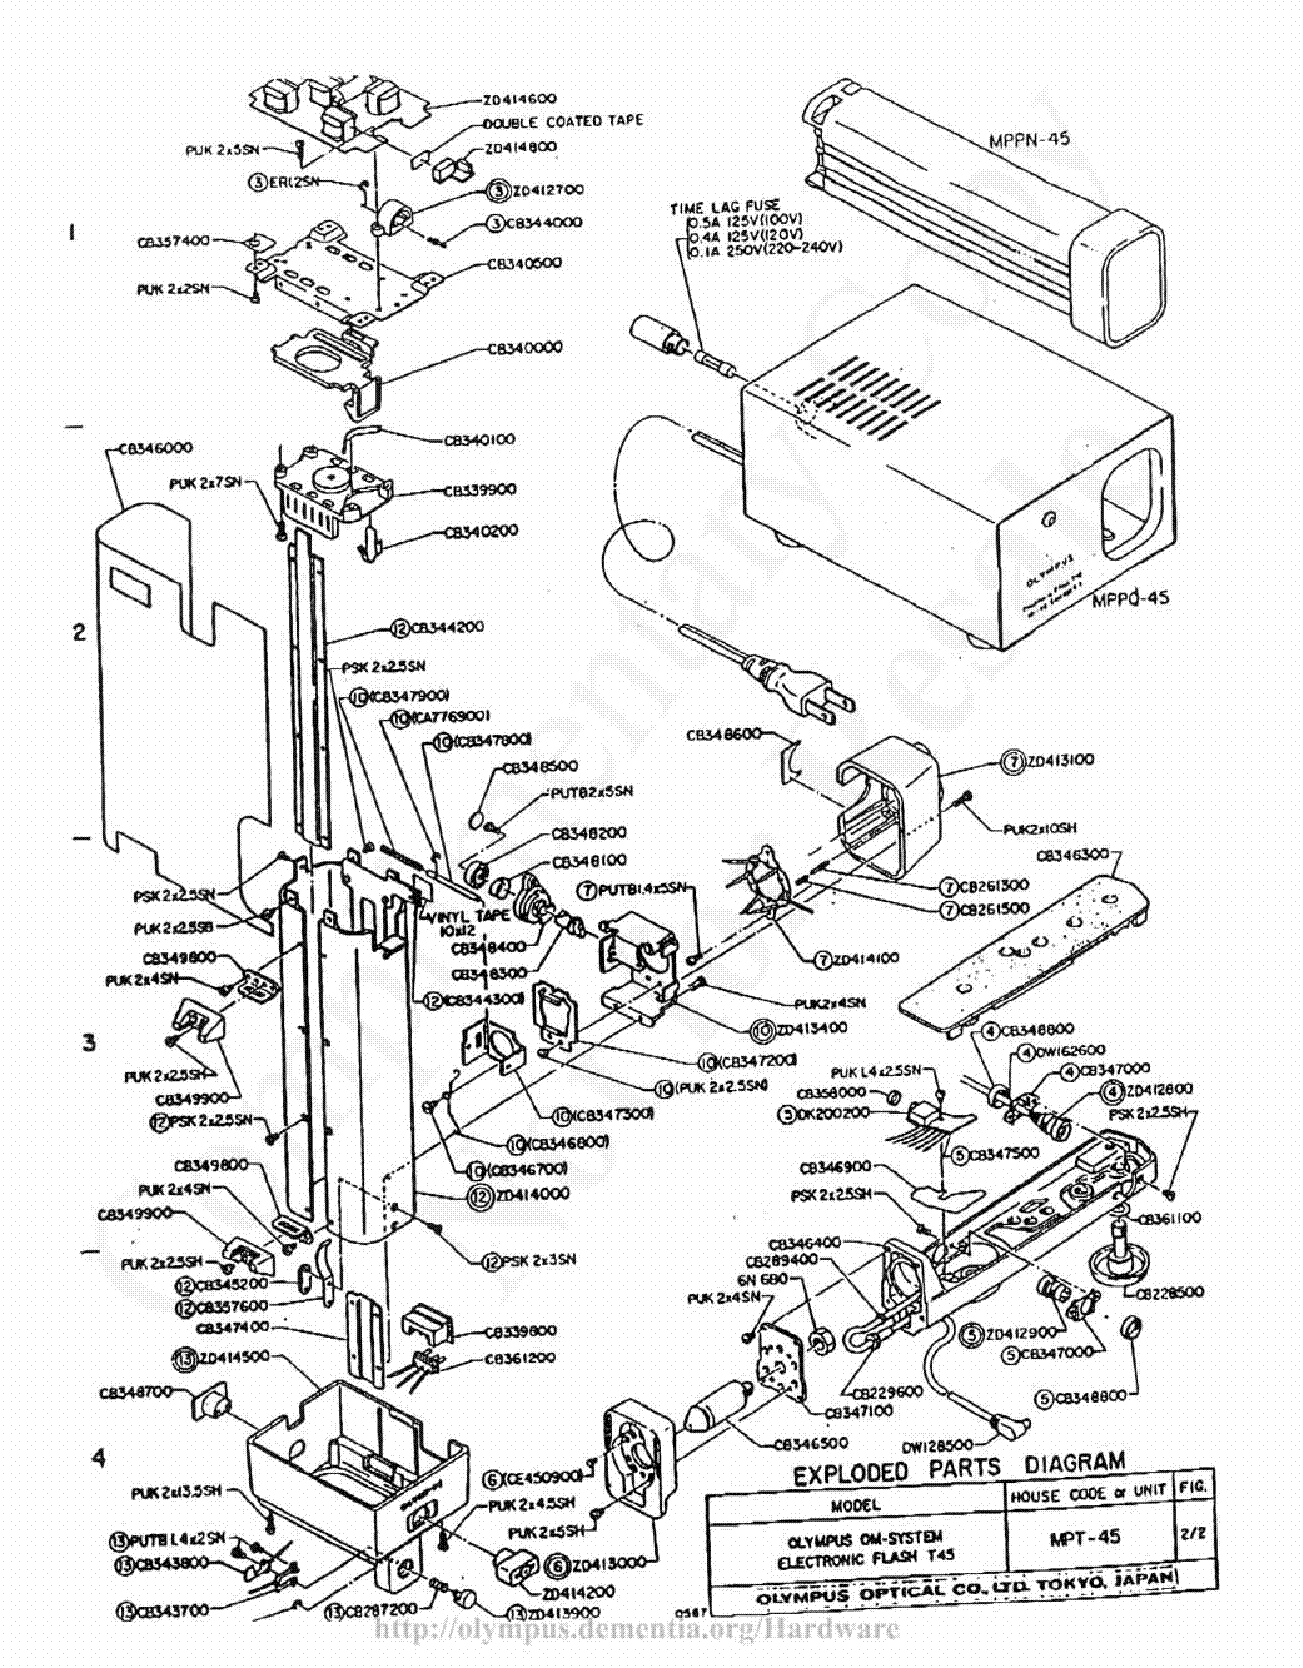 OLYMPUS T-45 EXPLODED PARTS DIAGRAM Service Manual